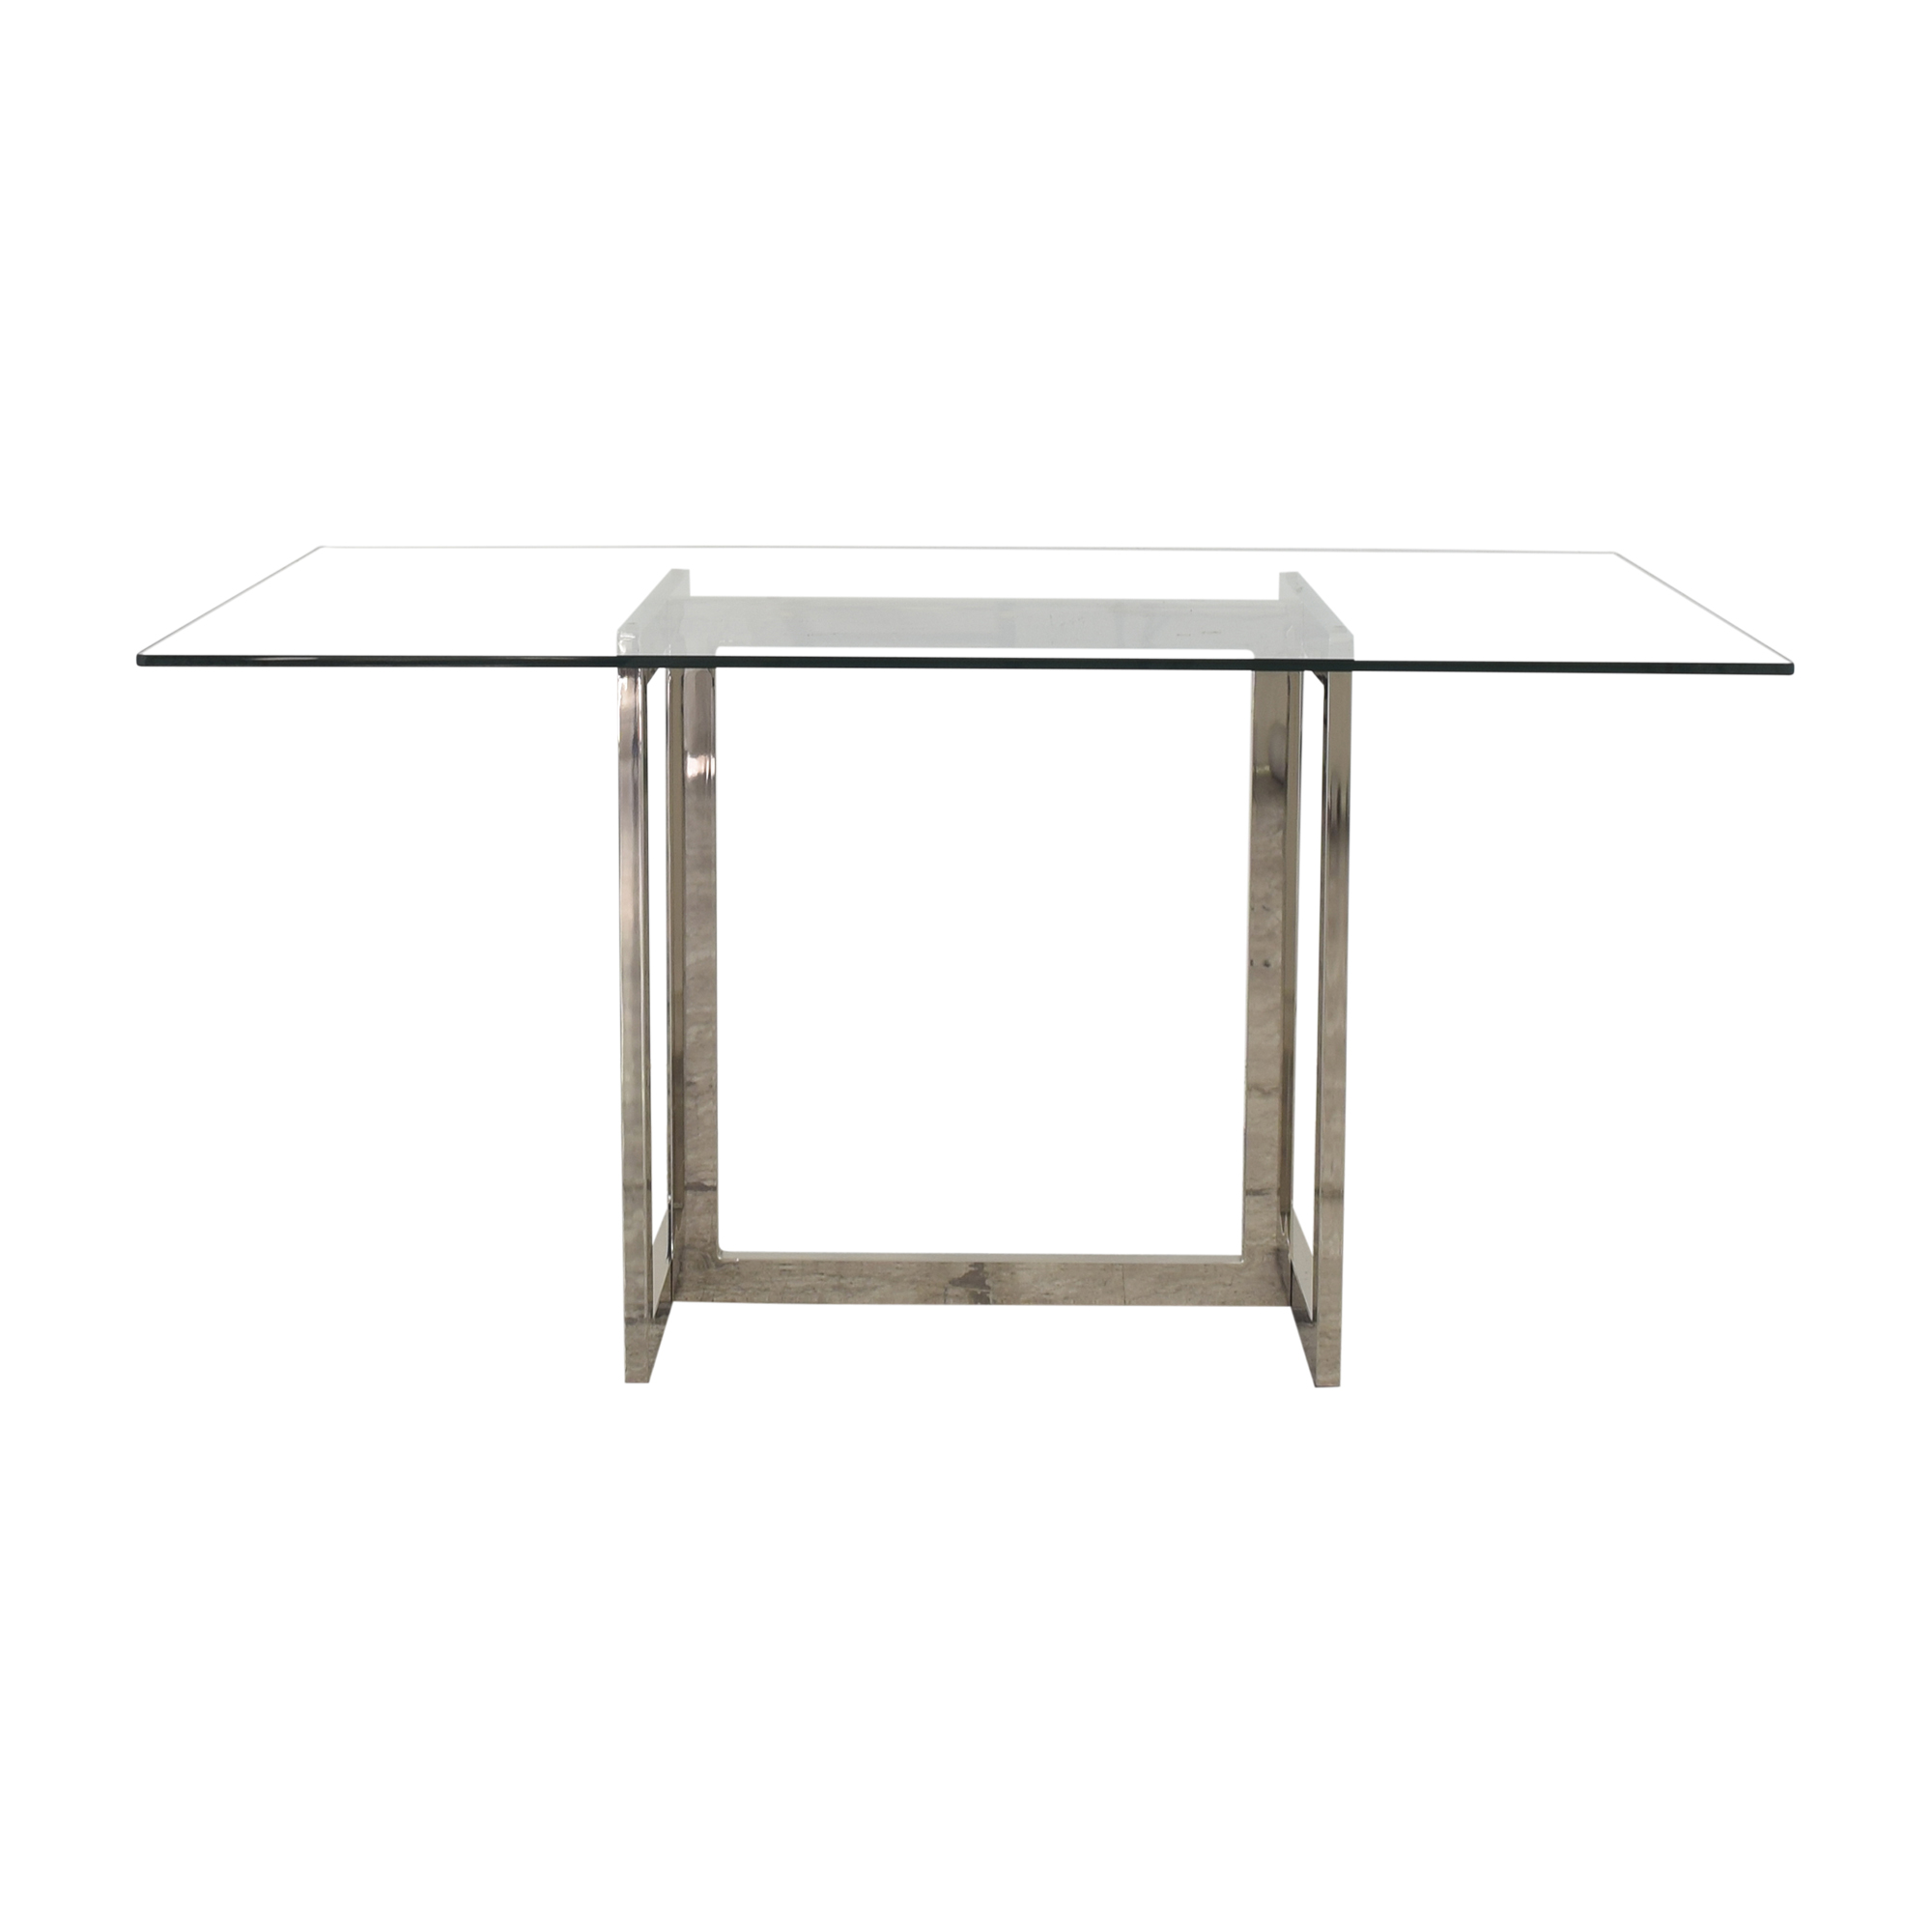 West Elm West Elm Hicks Dining Table ma